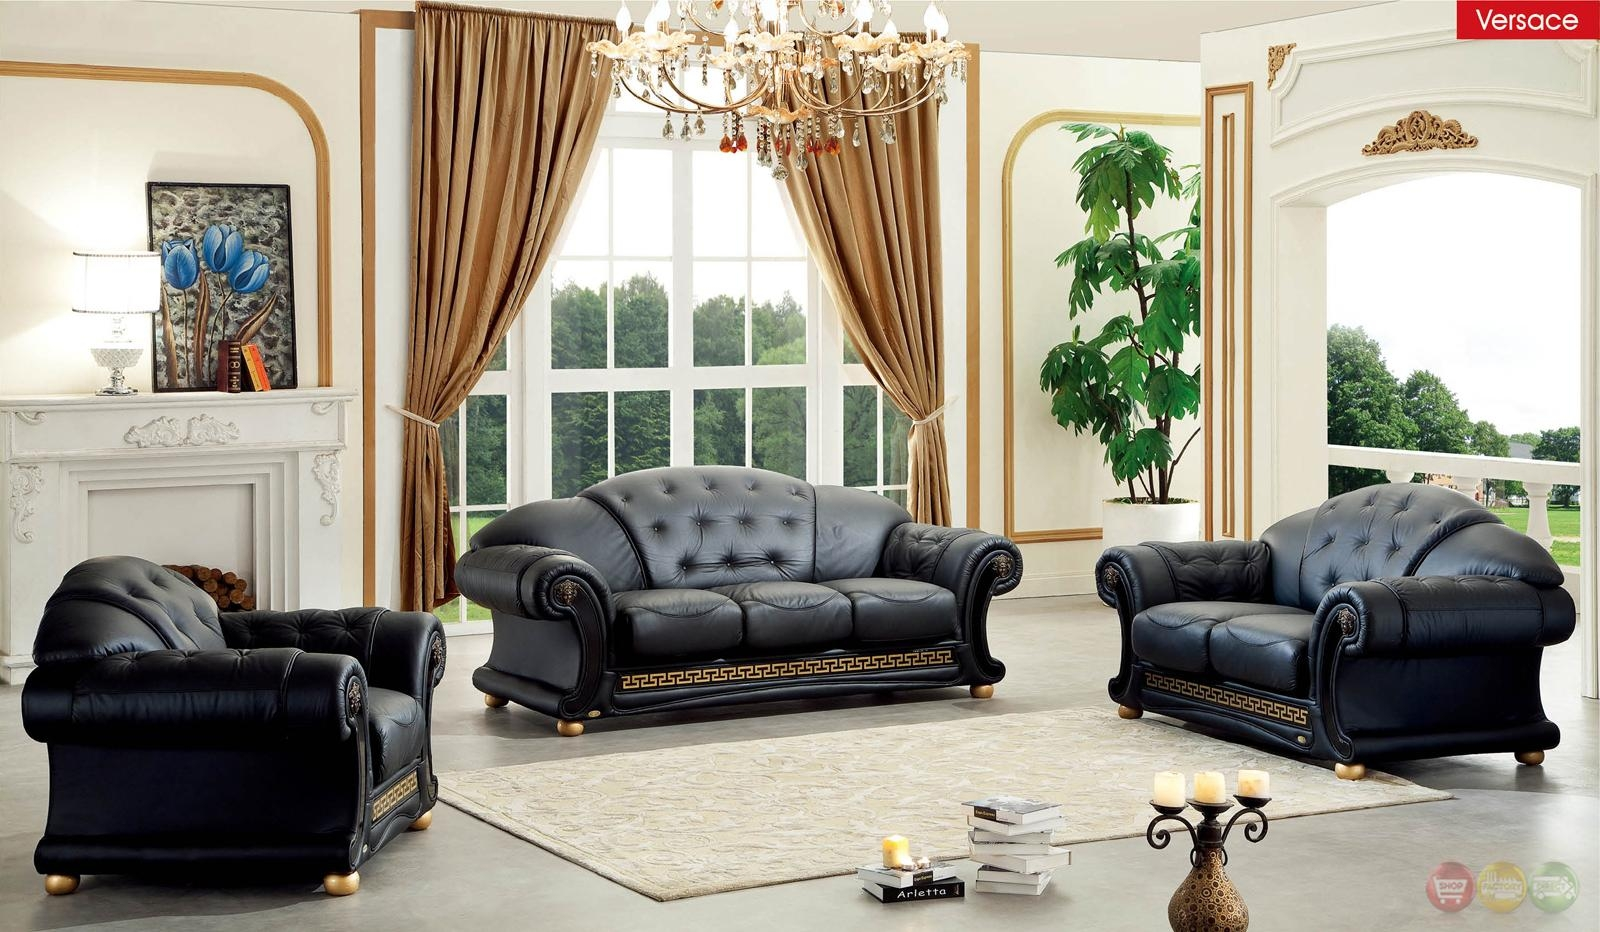 Versace Black Genuine Top Grain Italian Leather Luxurious Living With Regard To Living Room Sofas And Chairs (View 16 of 20)